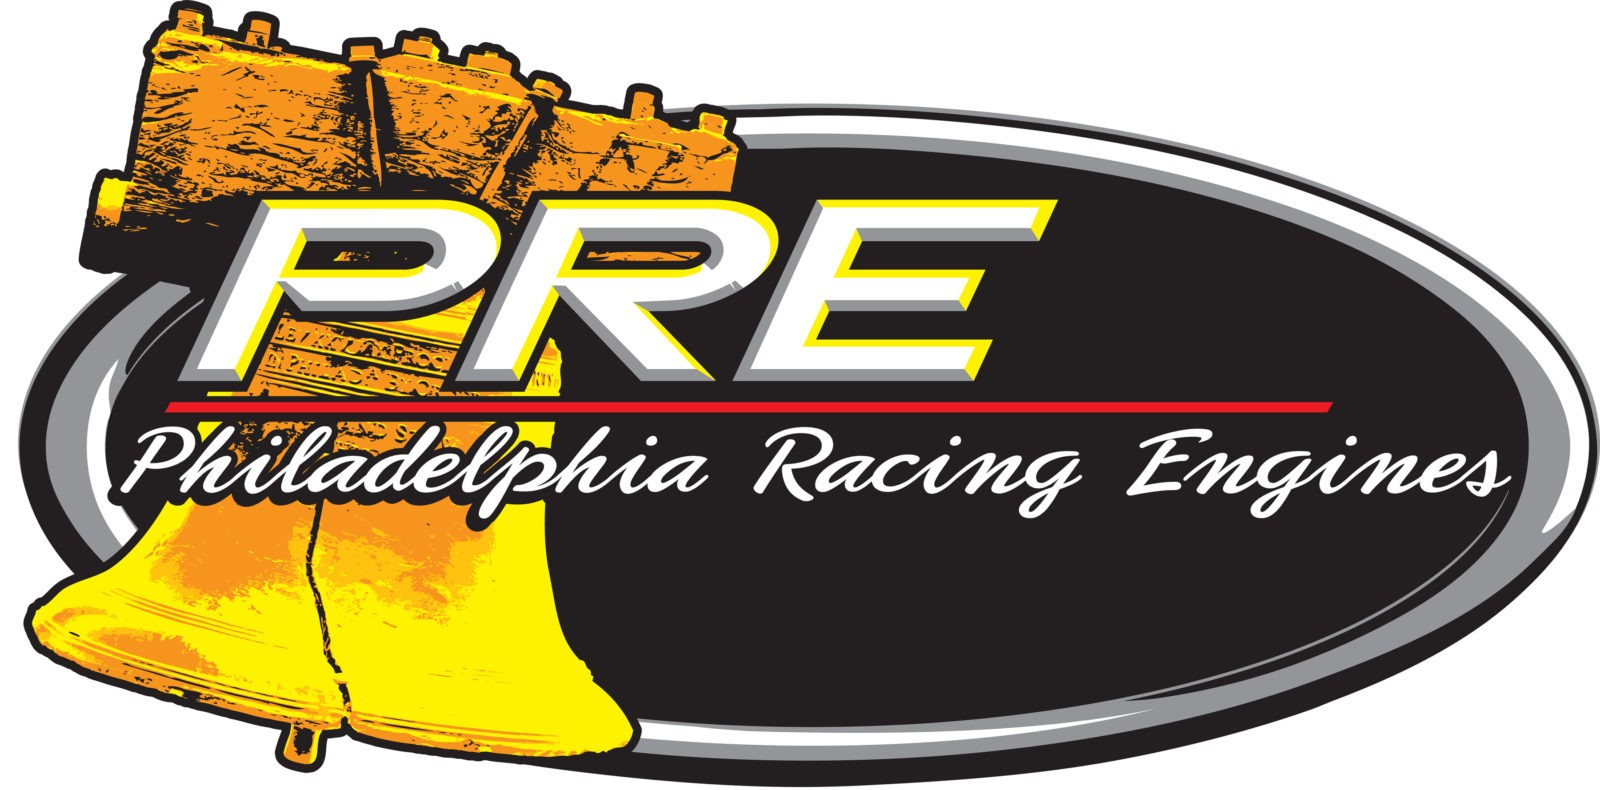 PRE Engine Shop Service Logo, a subsidiary of PRP Racing Products